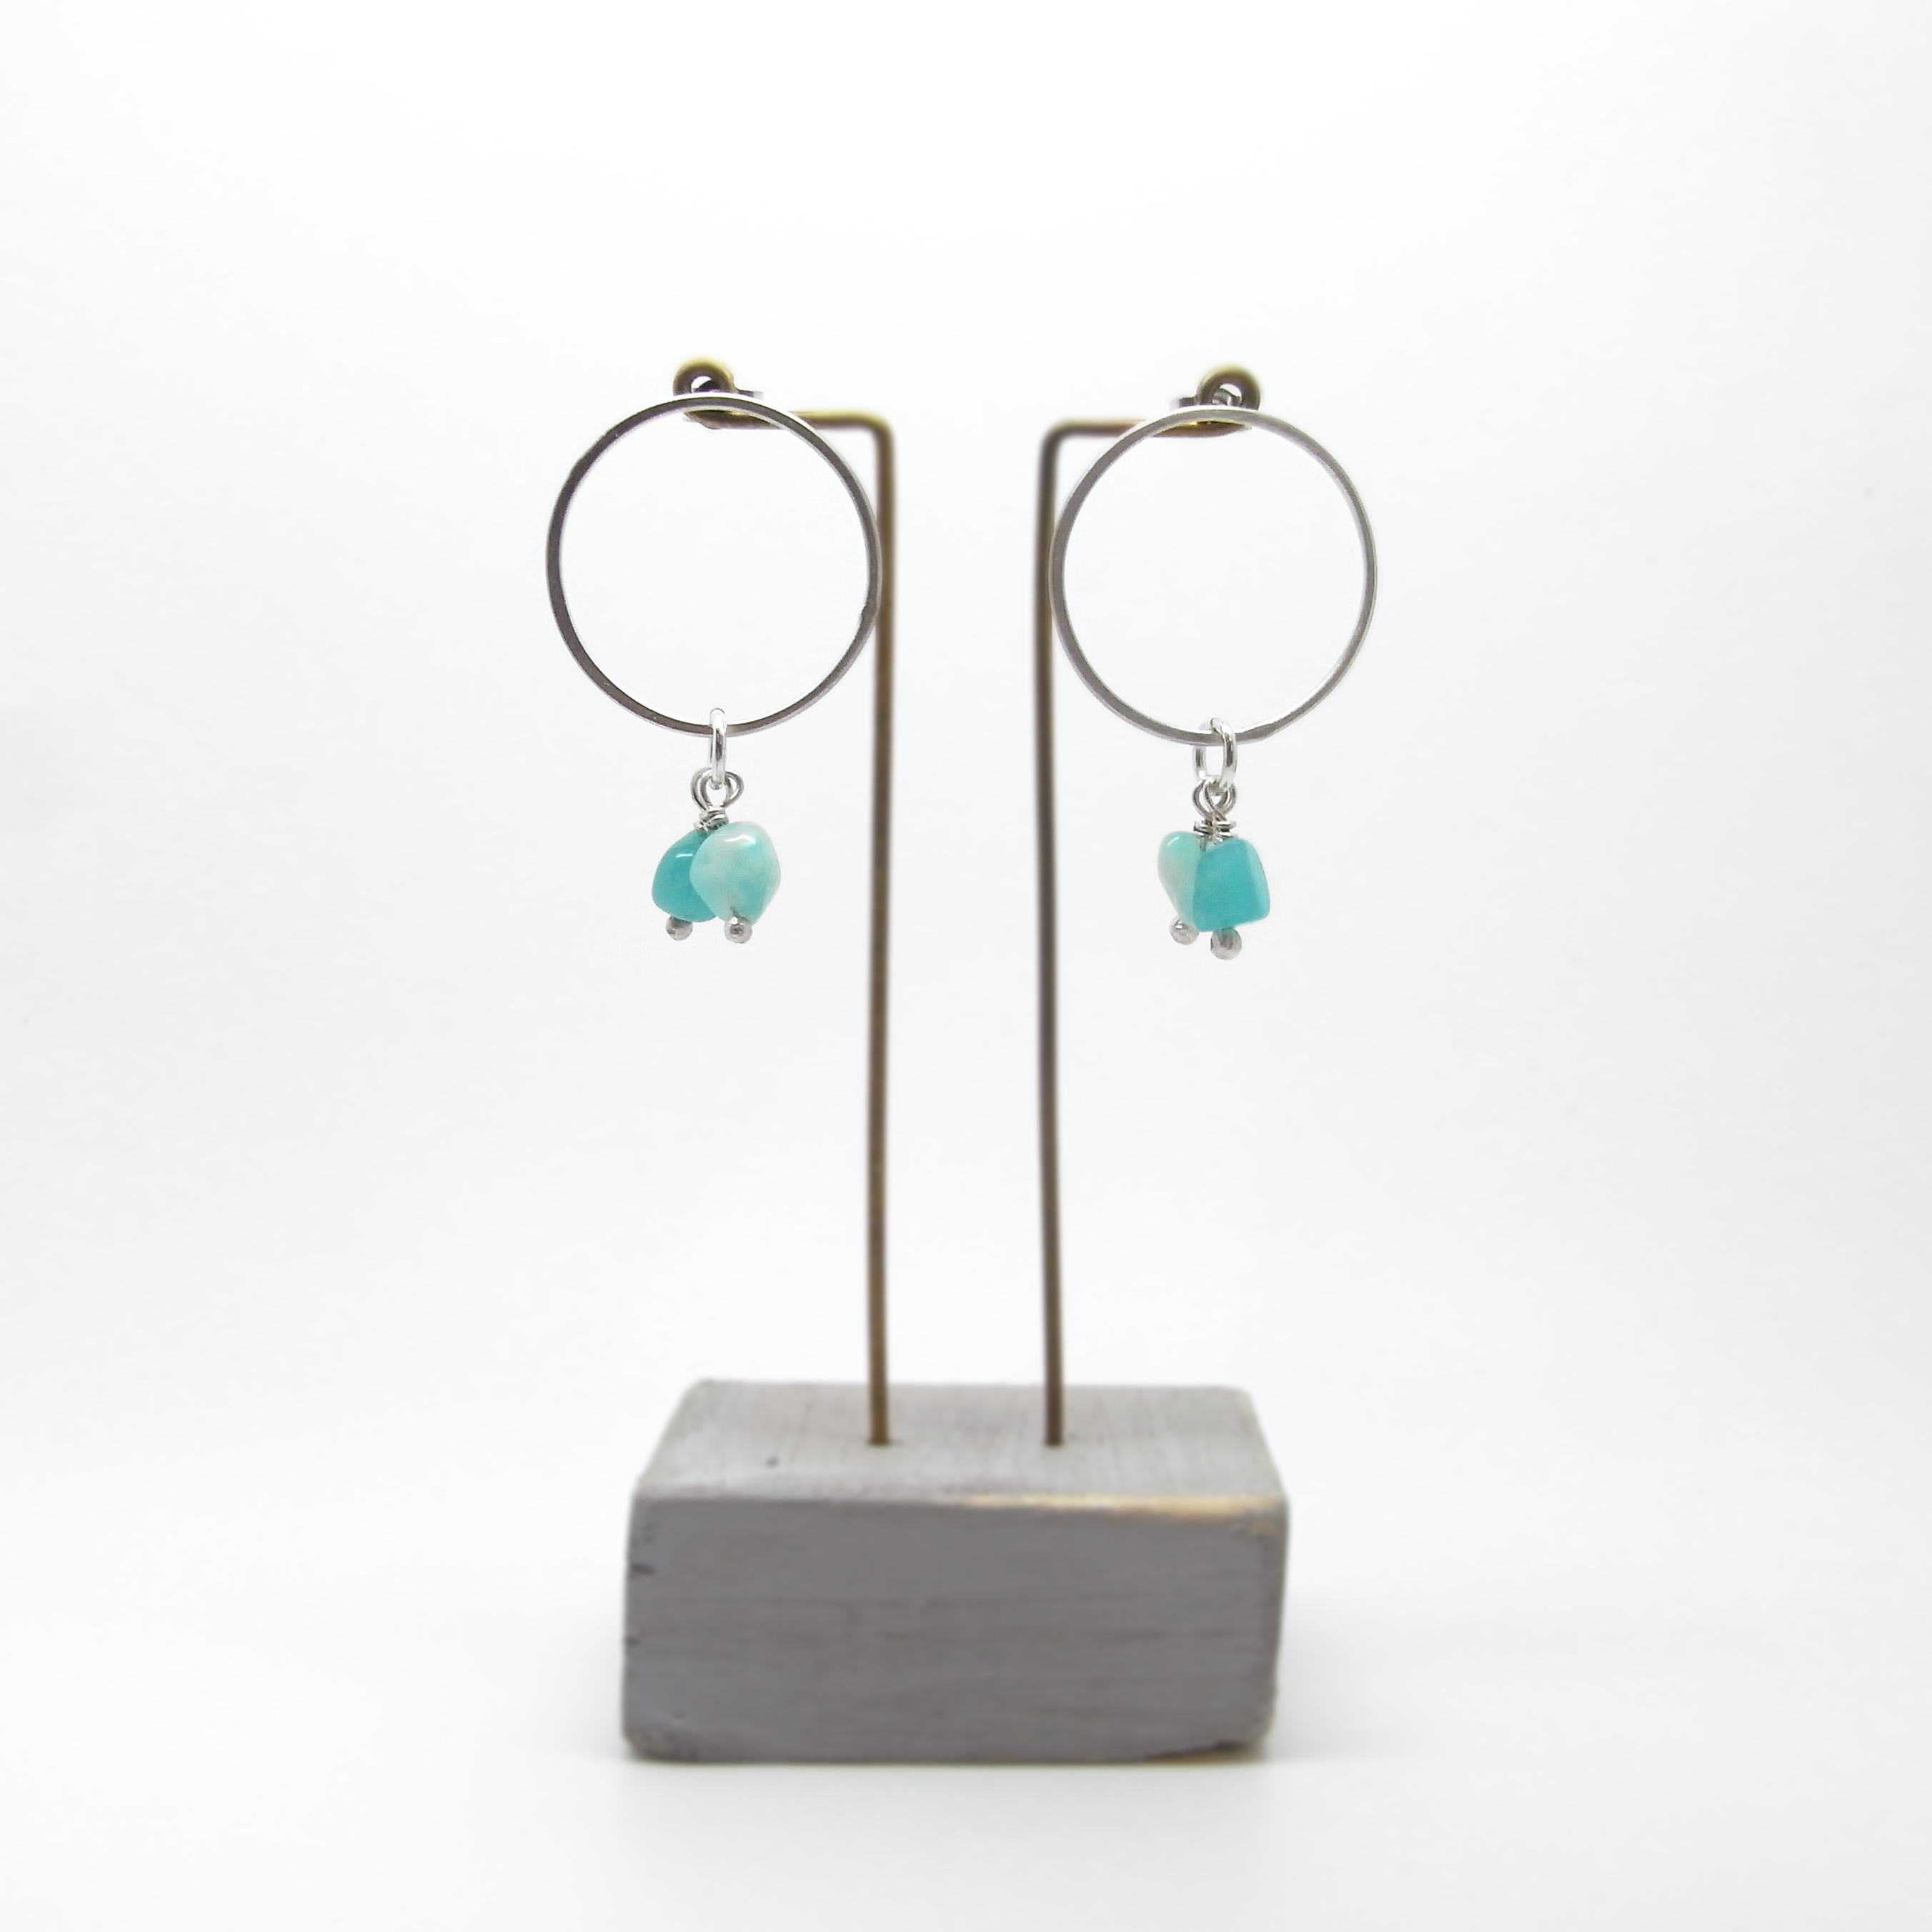 SALE - Round Stud With Semi Precious Bead Earrings